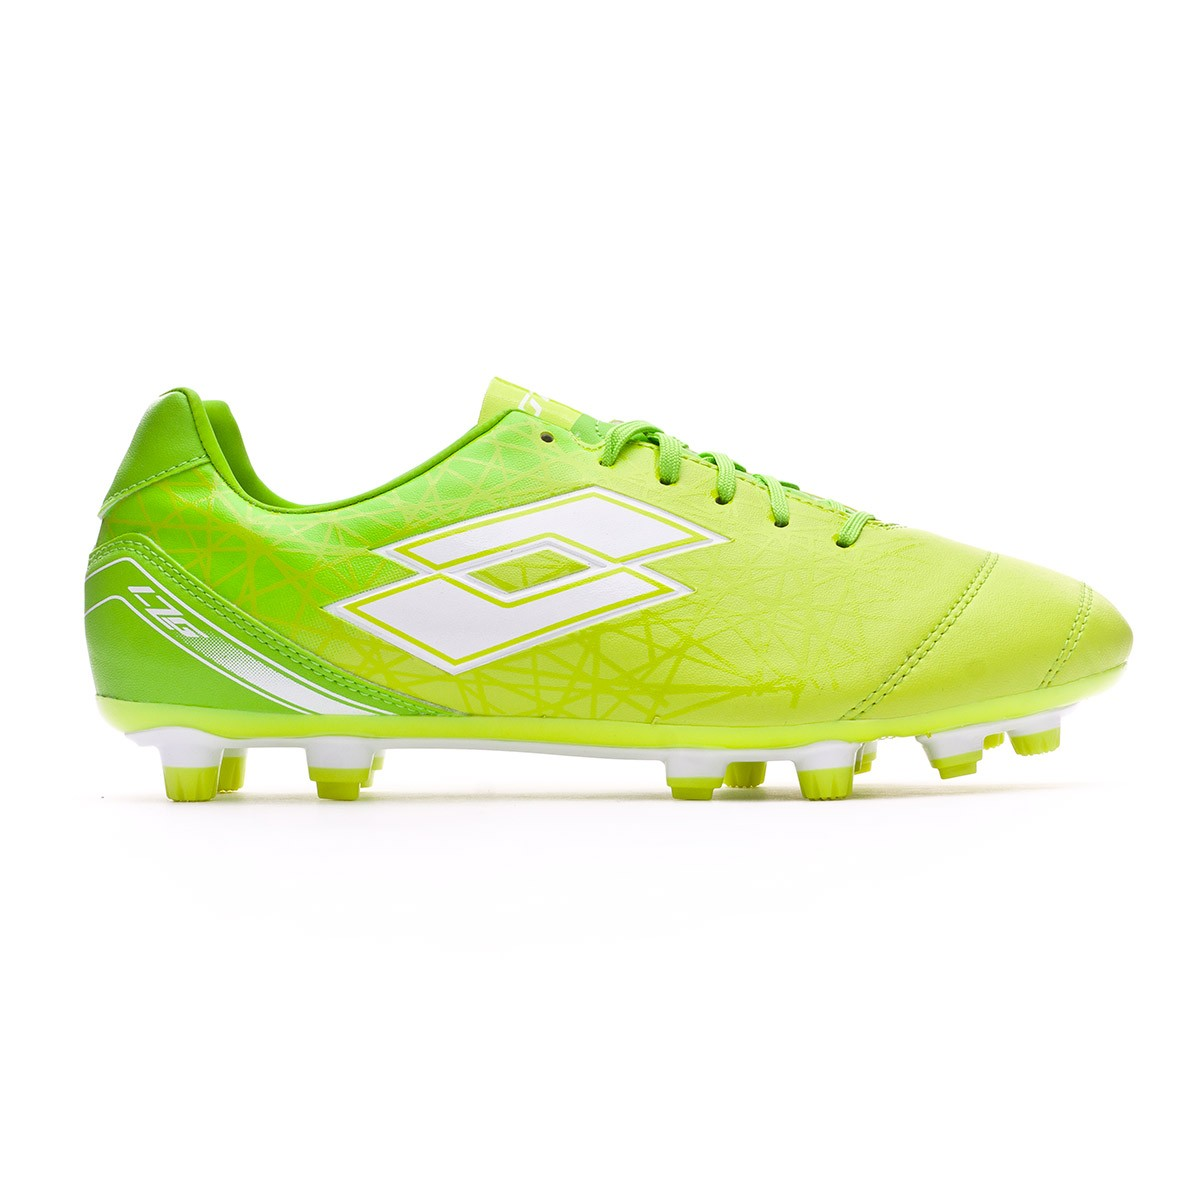 new style b2be6 c7bb2 Football Boots Lotto Zhero Gravity 700 X FG Green-White - Tienda de fútbol  Fútbol Emotion